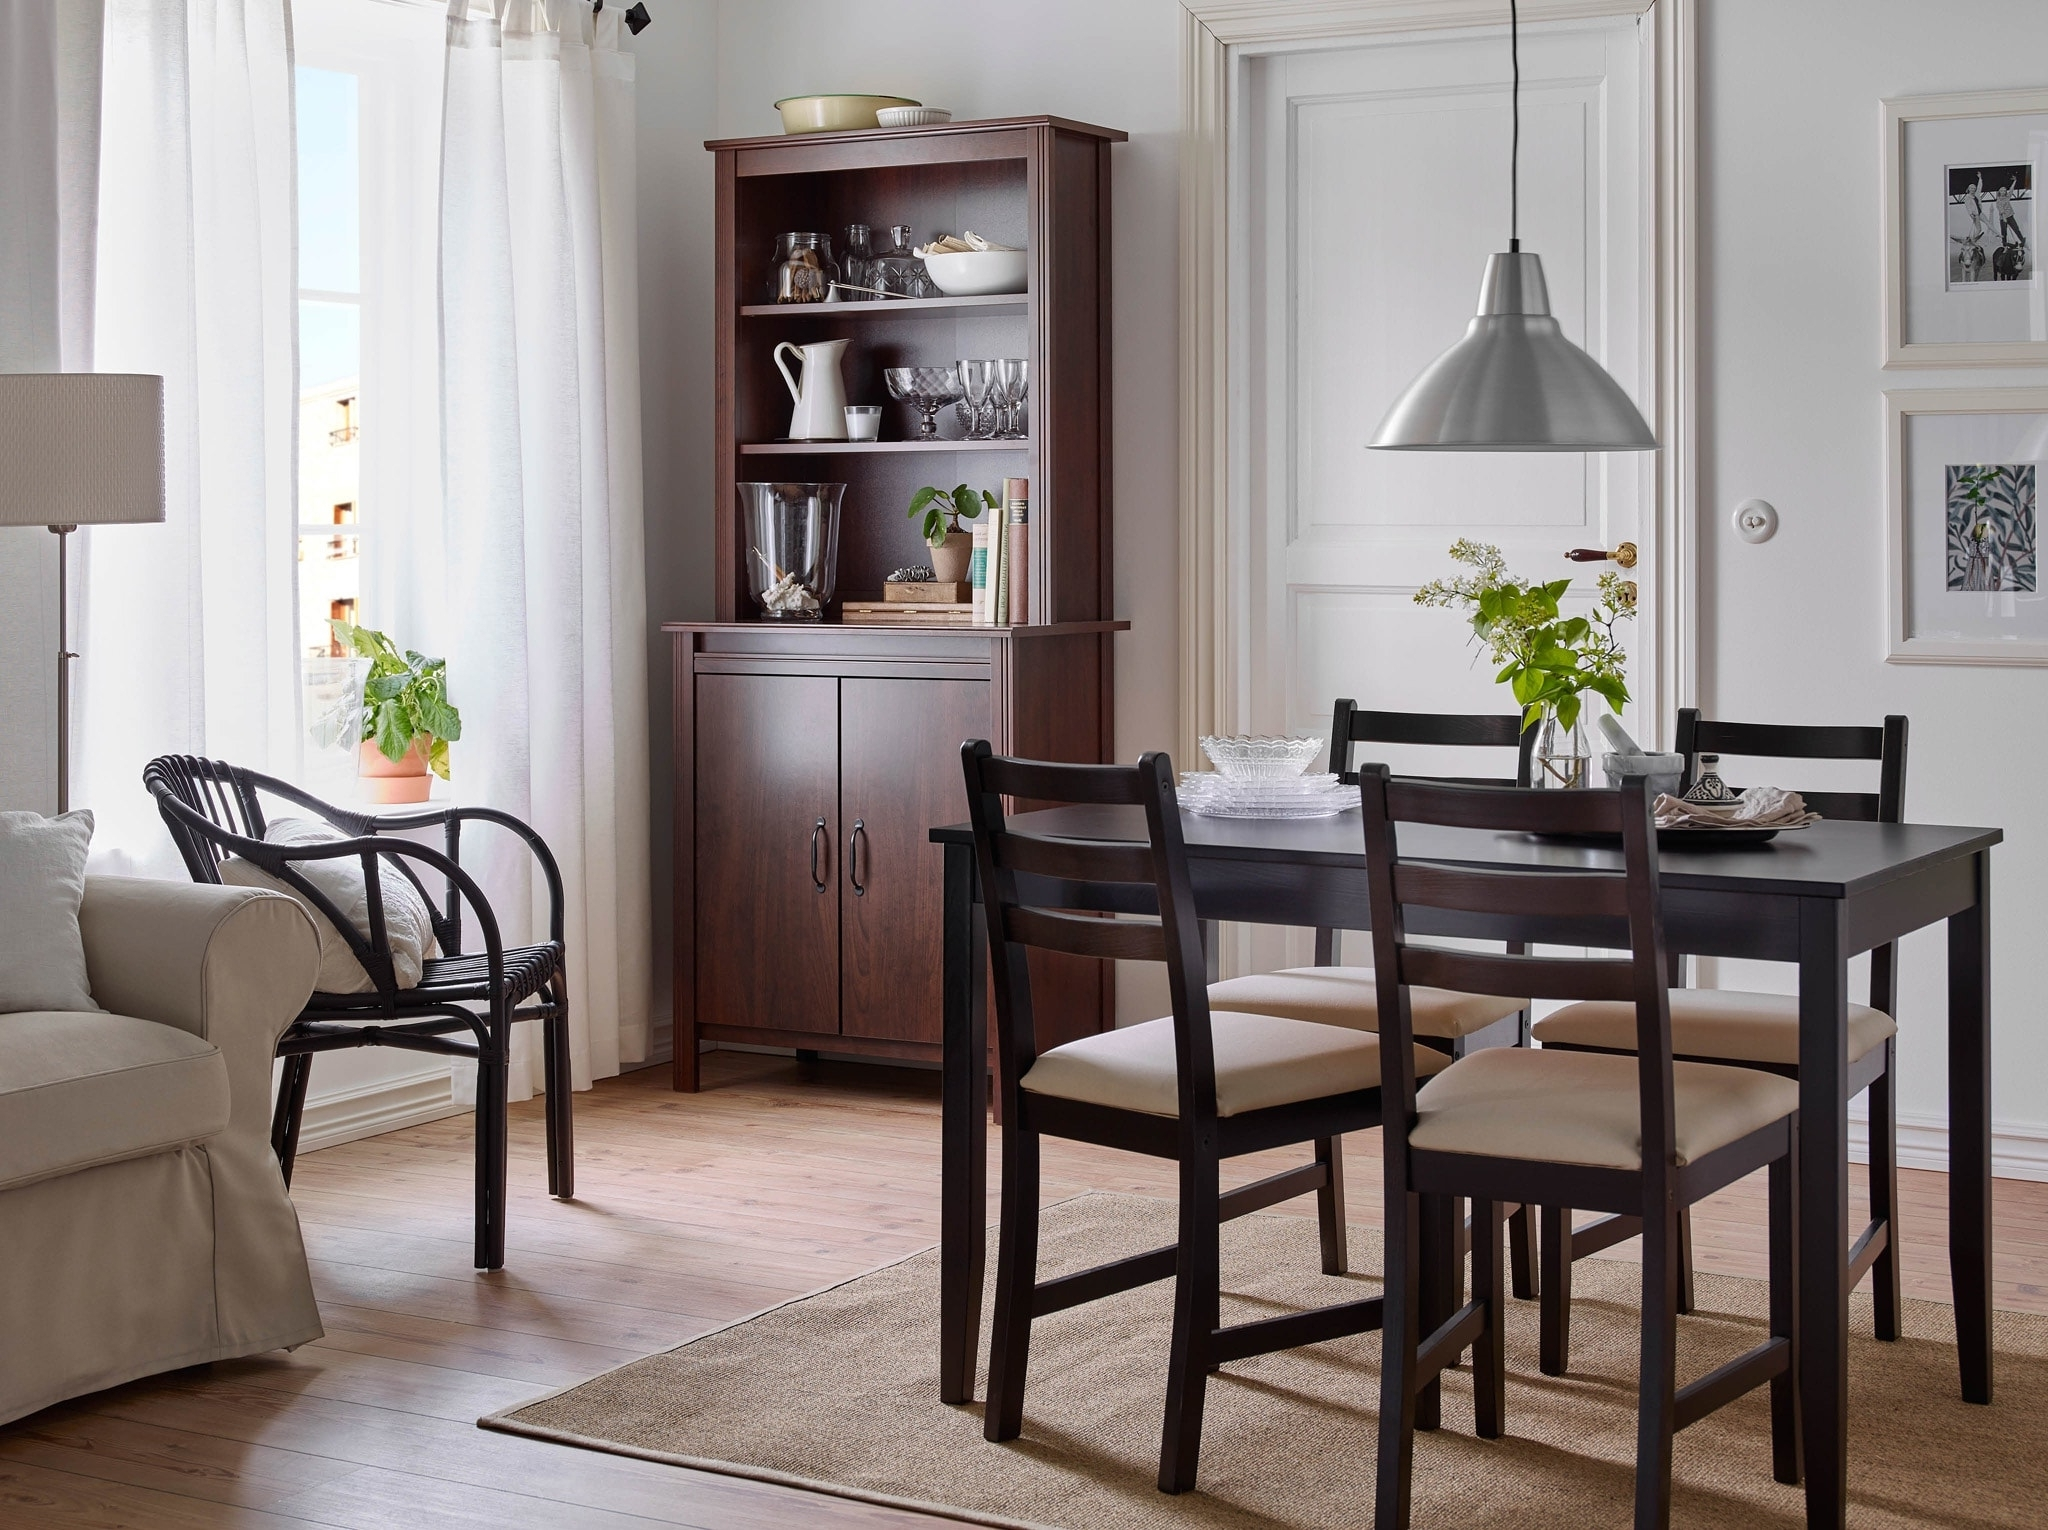 Favorite Dining Room Furniture & Ideas (View 13 of 25)